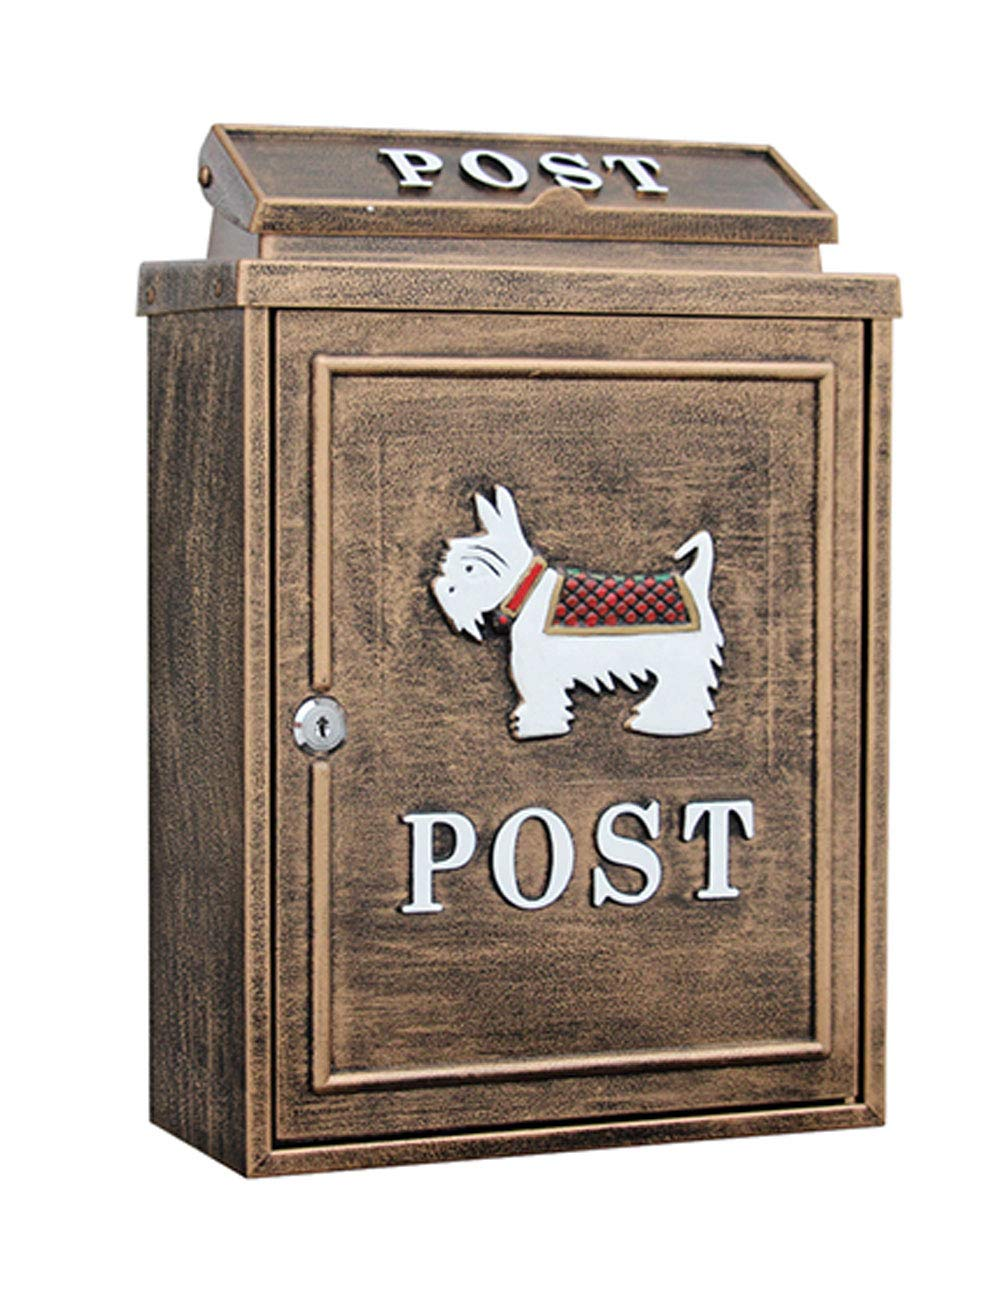 European Retro Mailbox Printing and Painting Process Outdoor Rainwater Wall Hanging with Lock Postbox Cast Iron Craft Letter Box